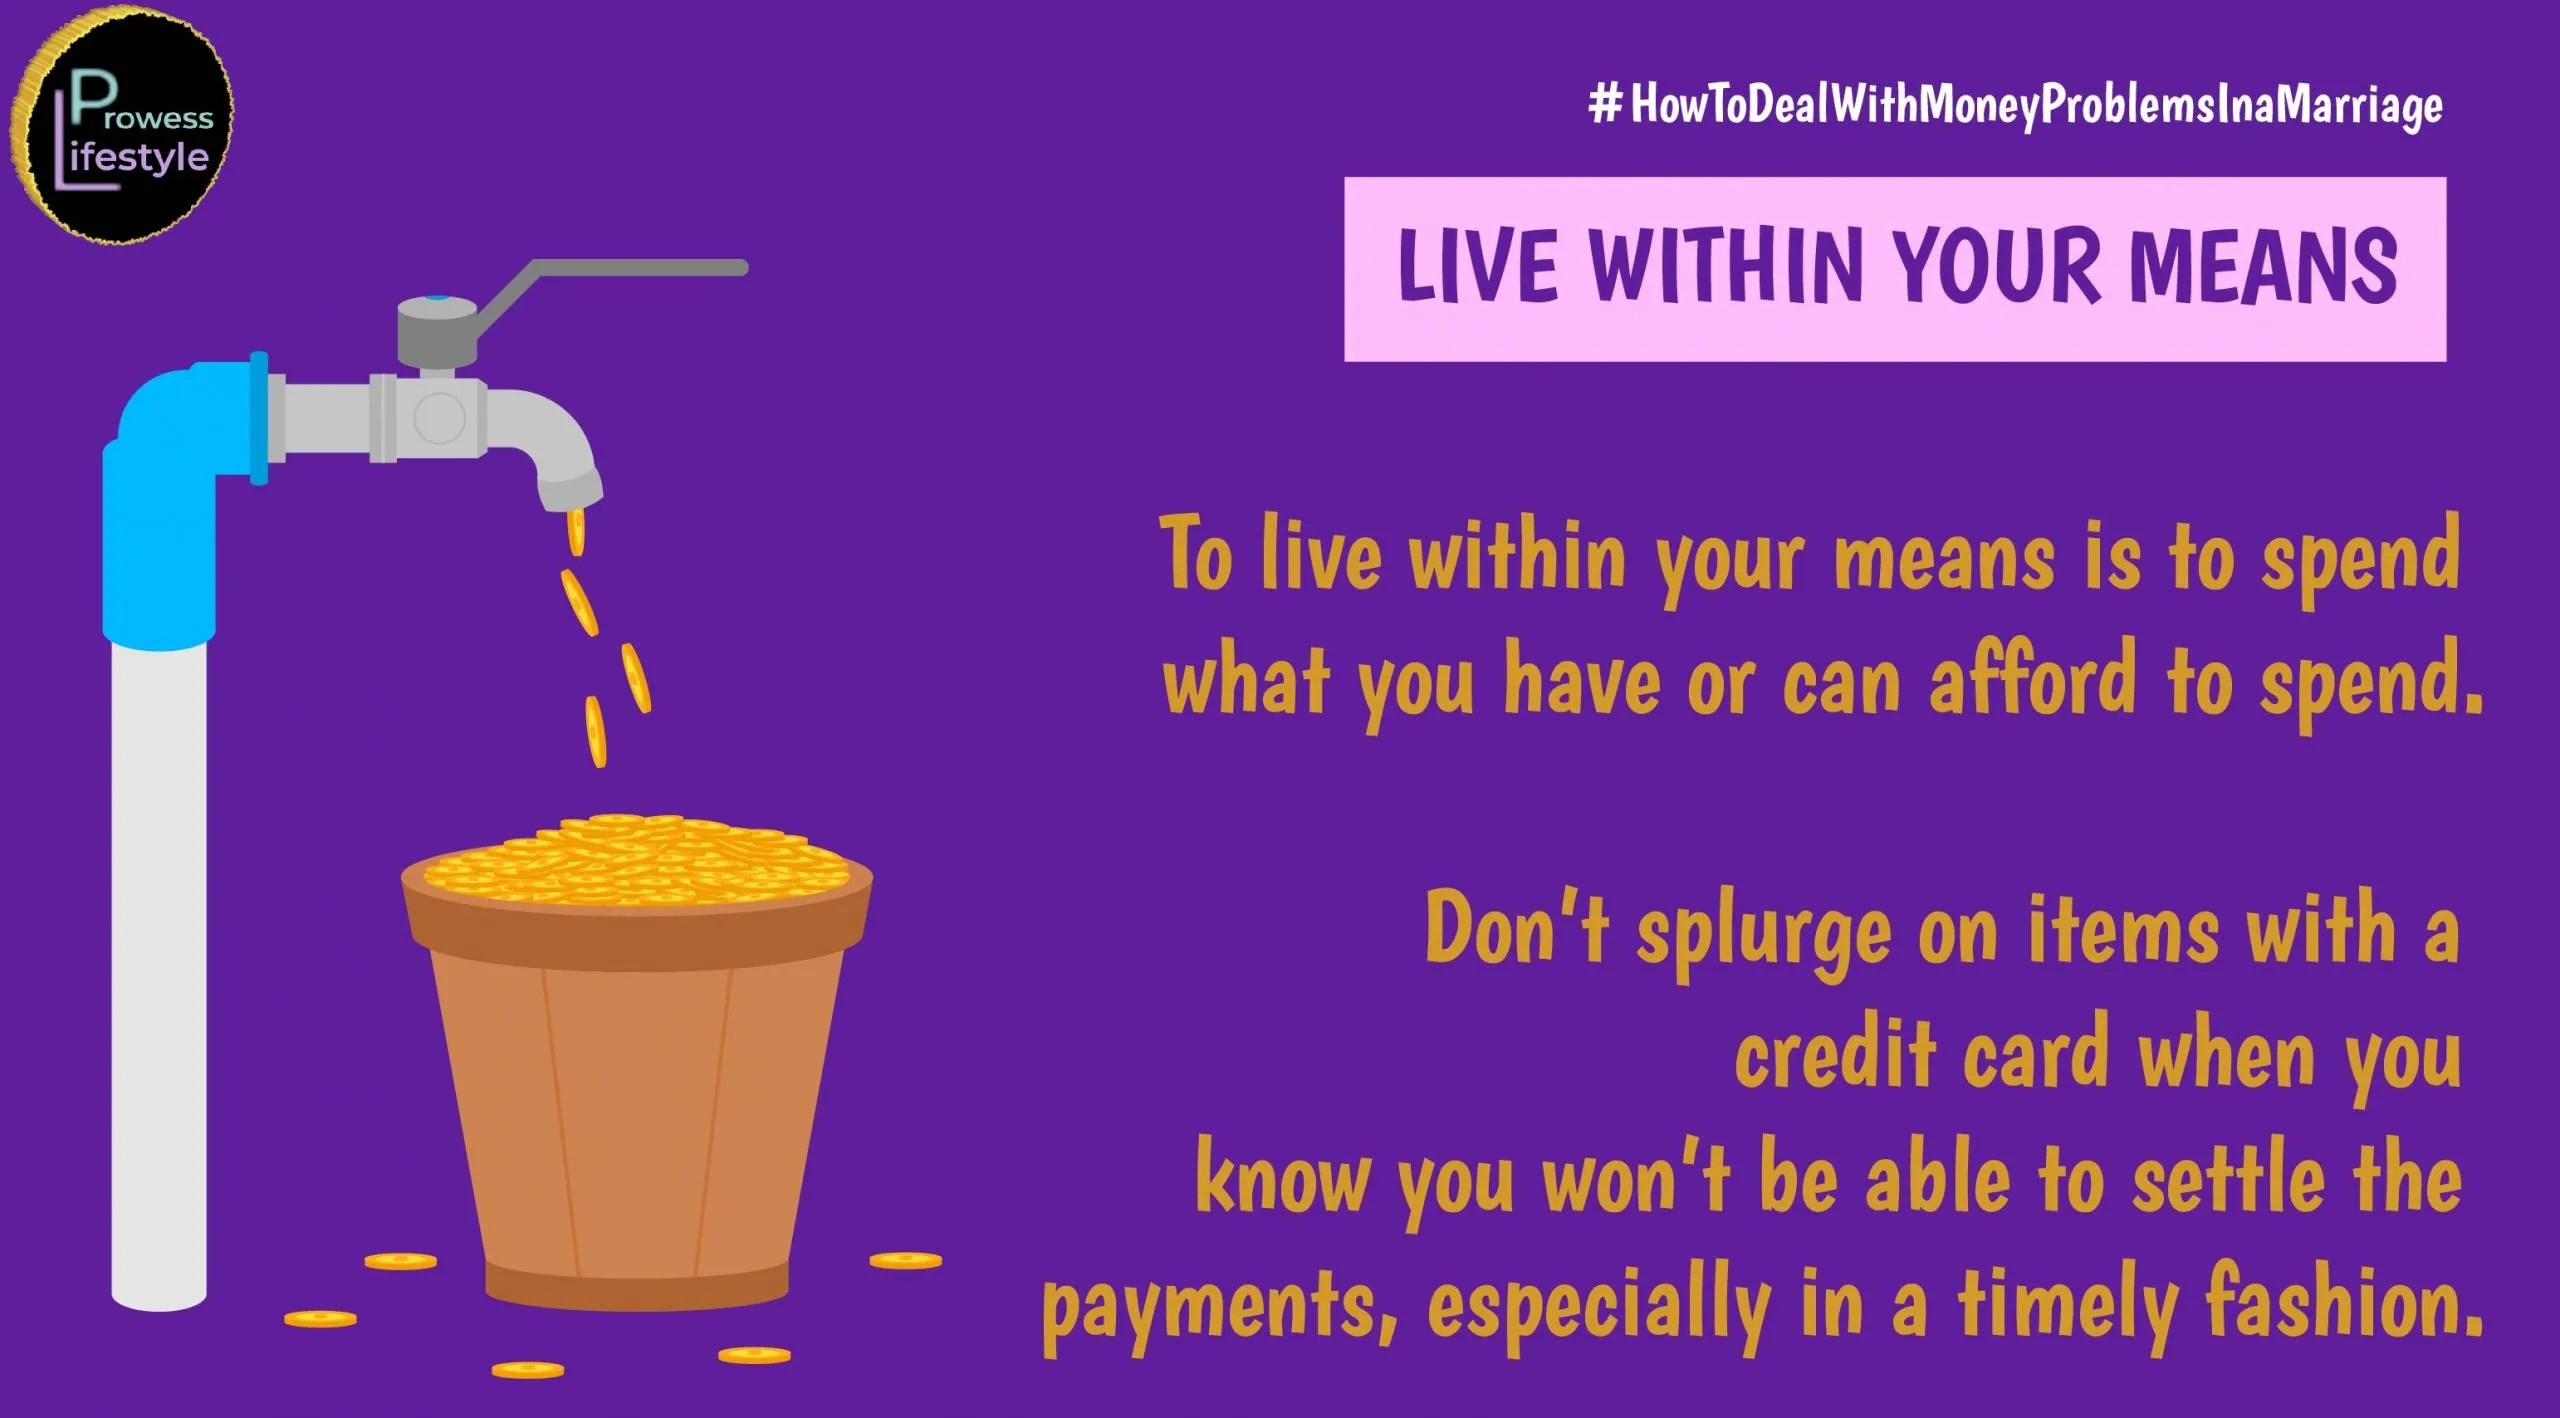 LIVE WITHIN YOUR MEANS - Money problems in a marriage